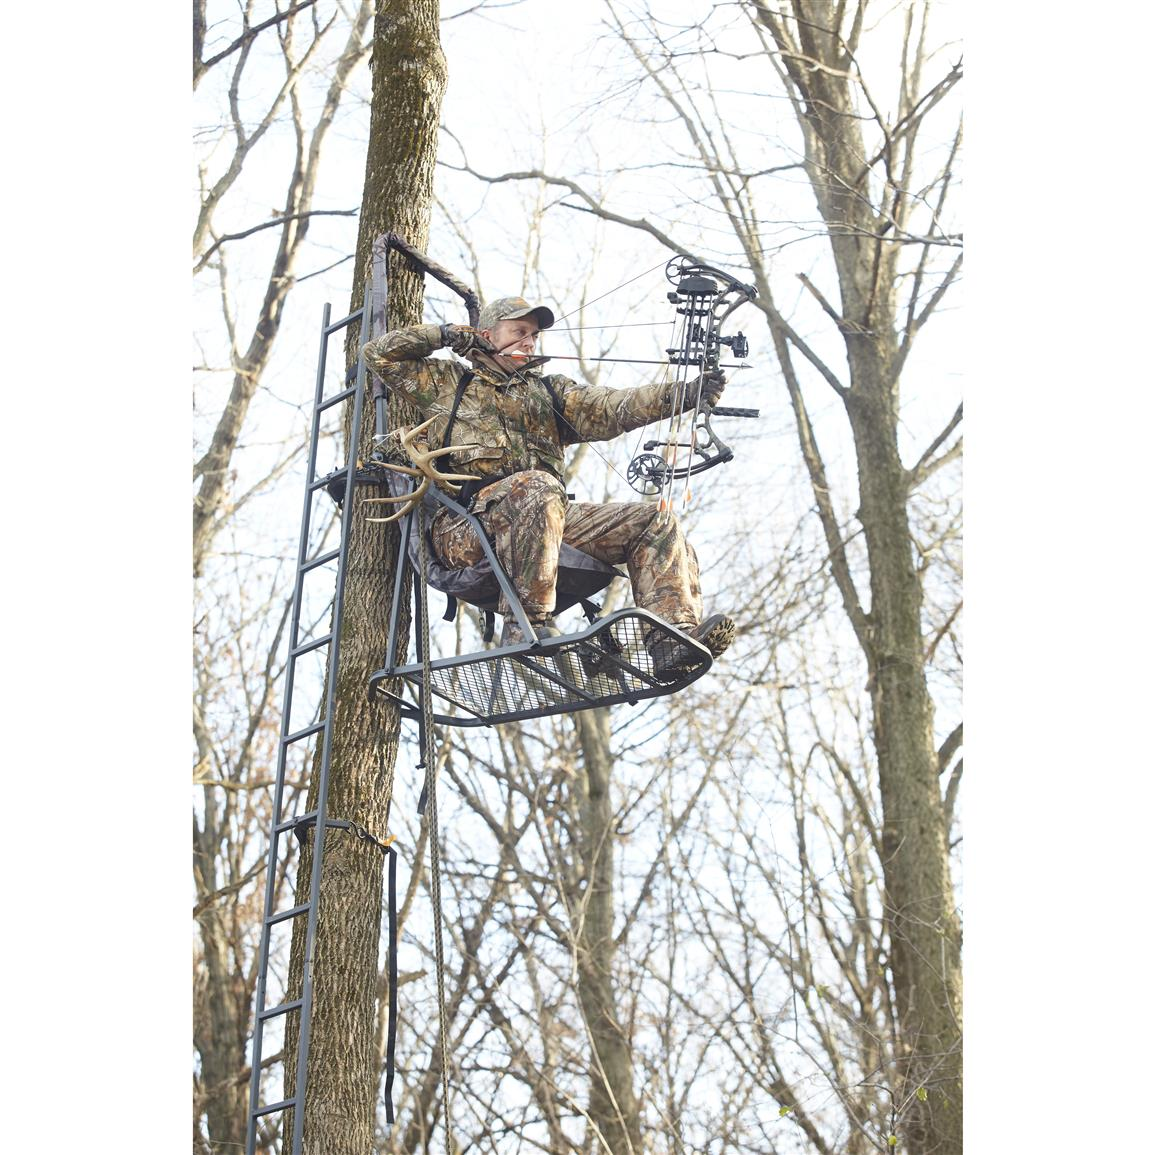 A chain-and-hook attachment mounts the tree Stand to the tree and includes 2 stabilizing hook-and-ratchet straps for a rock-solid setup